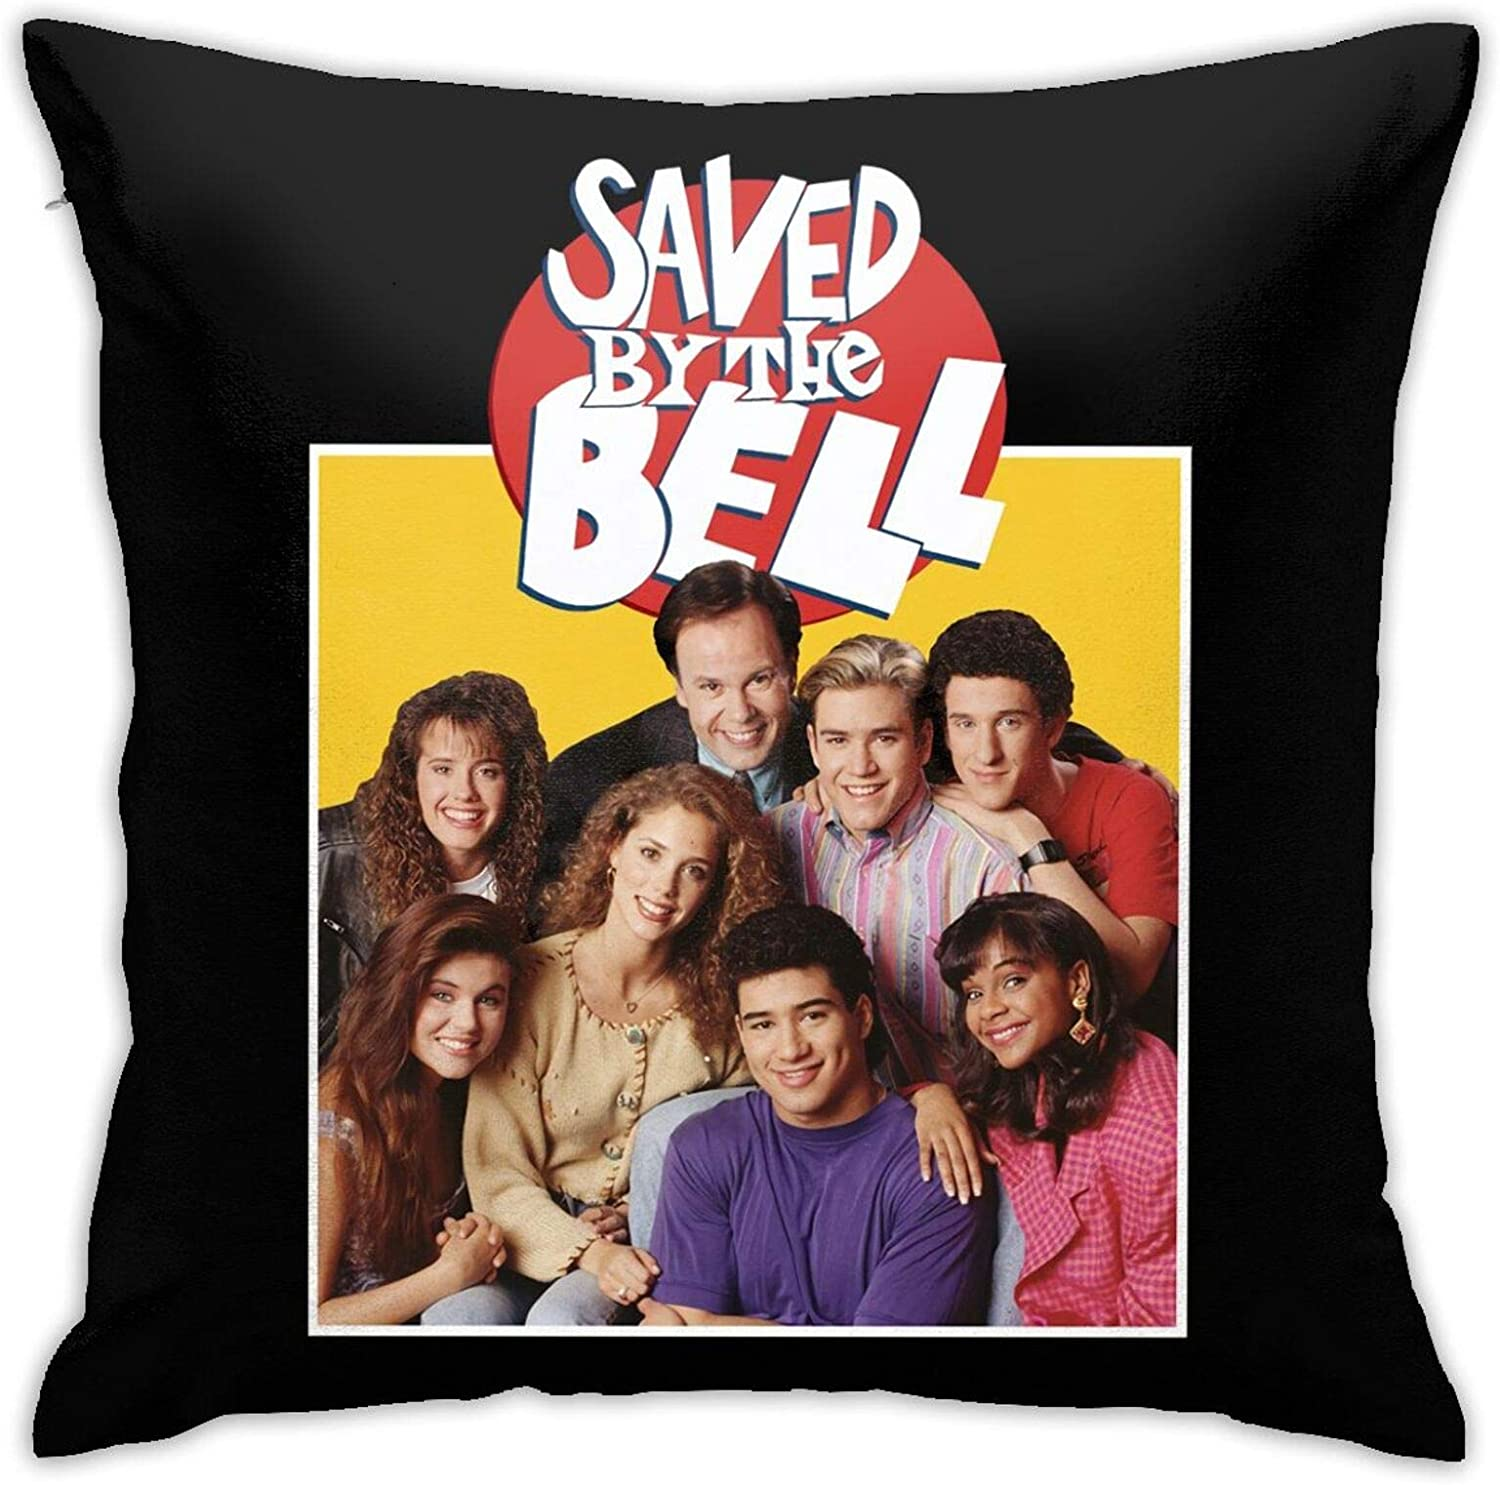 Atsh Saved by The Bell Home Throw Pillow Covers Top Square Decorative Pillow 18x18 Inch Throw Pillow Case for Room Bedroom Room Sofa Chair Car Decor